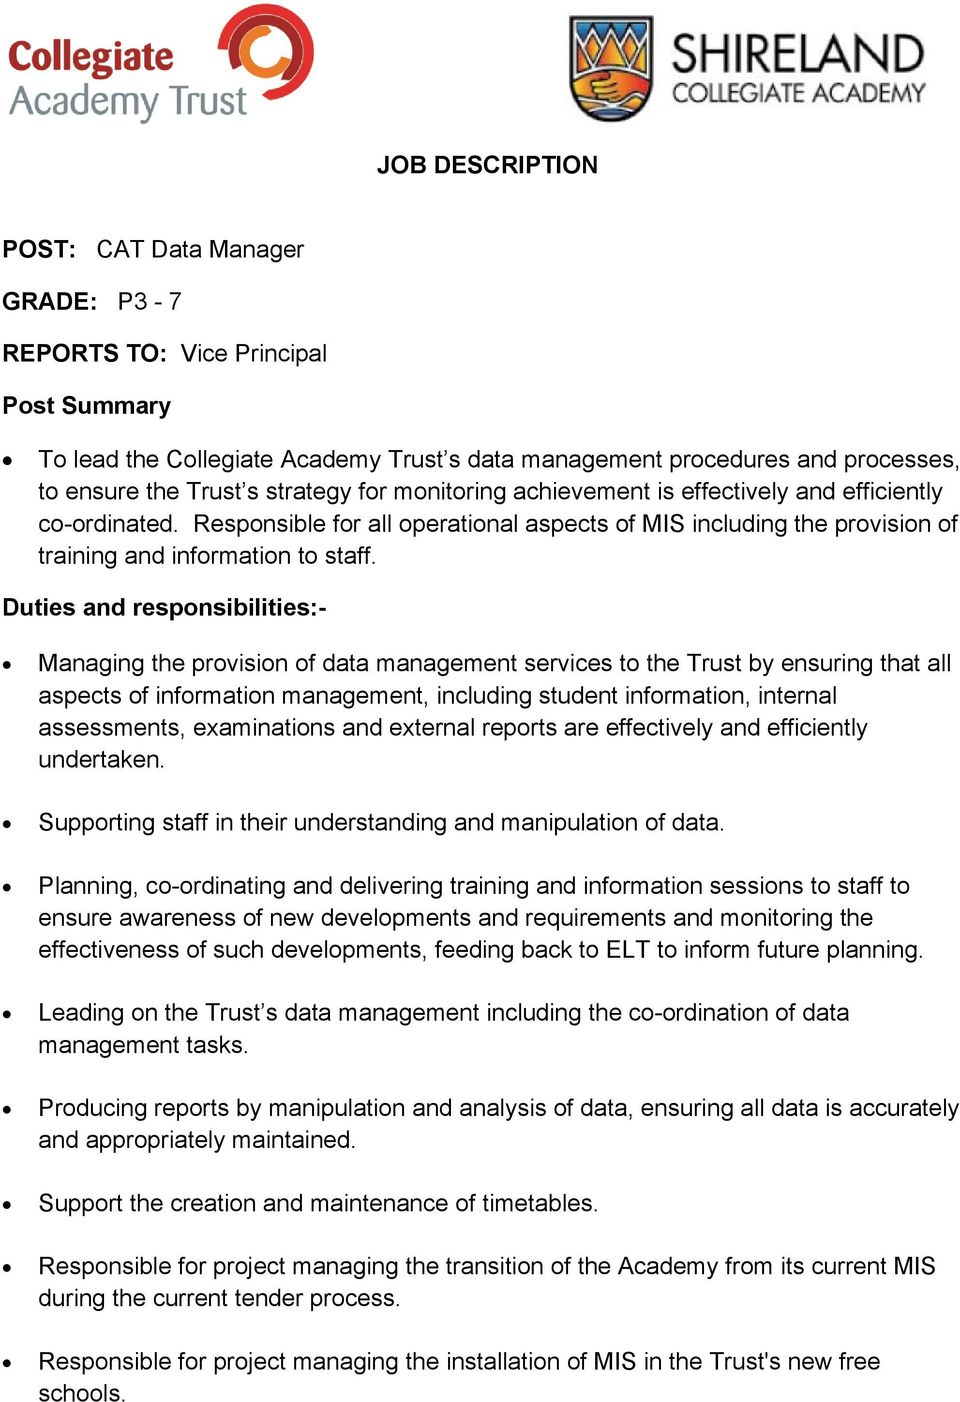 Duties and responsibilities:- Managing the provision of data management services to the Trust by ensuring that all aspects of information management, including student information, internal